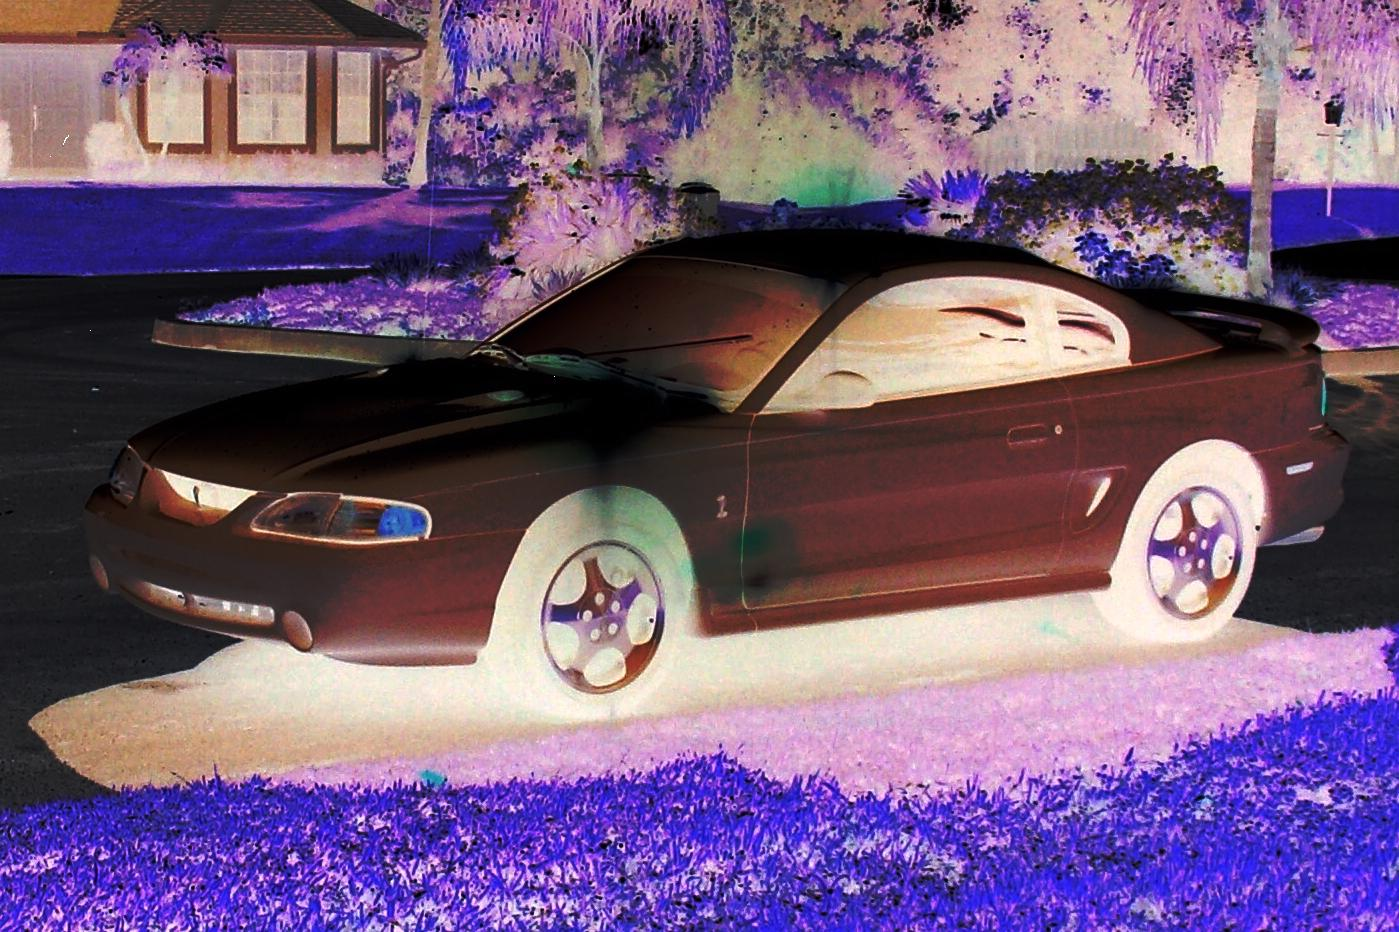 1996 Ford Mustang Cobra (stock)